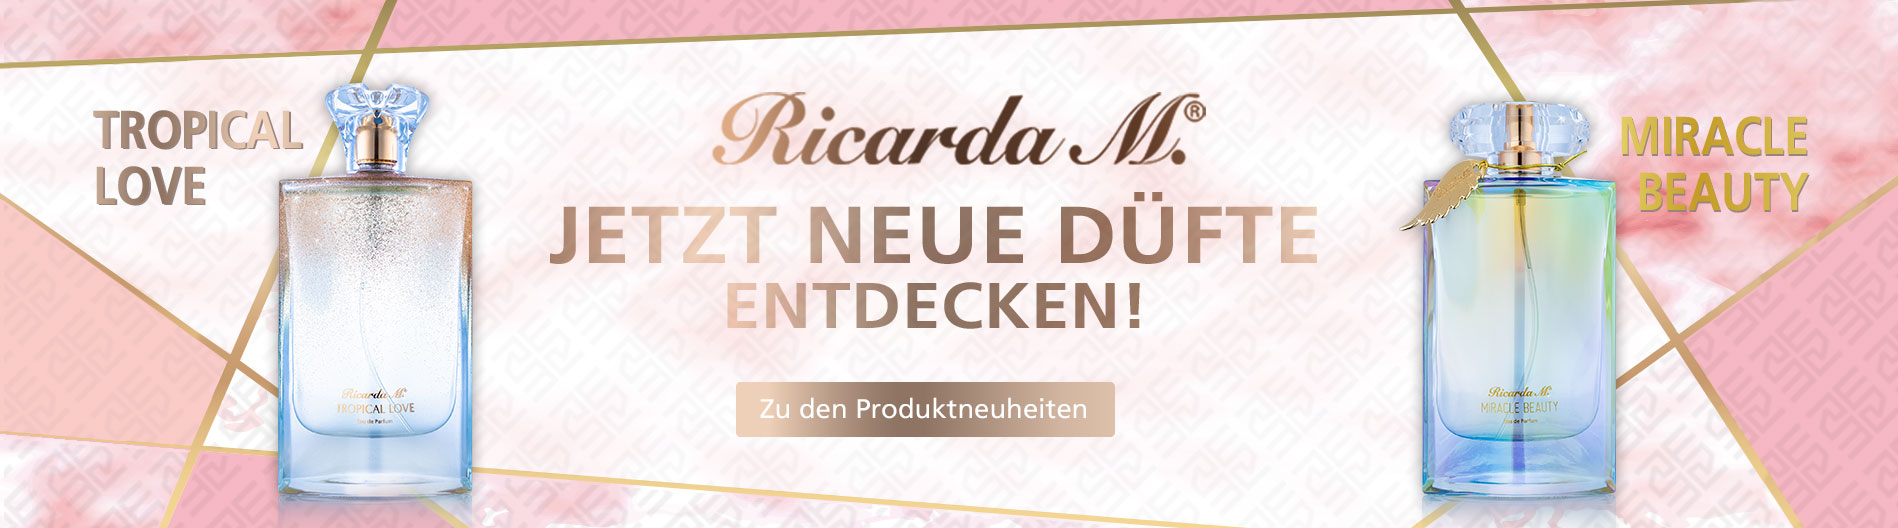 Tropical Love und Miracle Beauty Düfte bei Ricarda M.